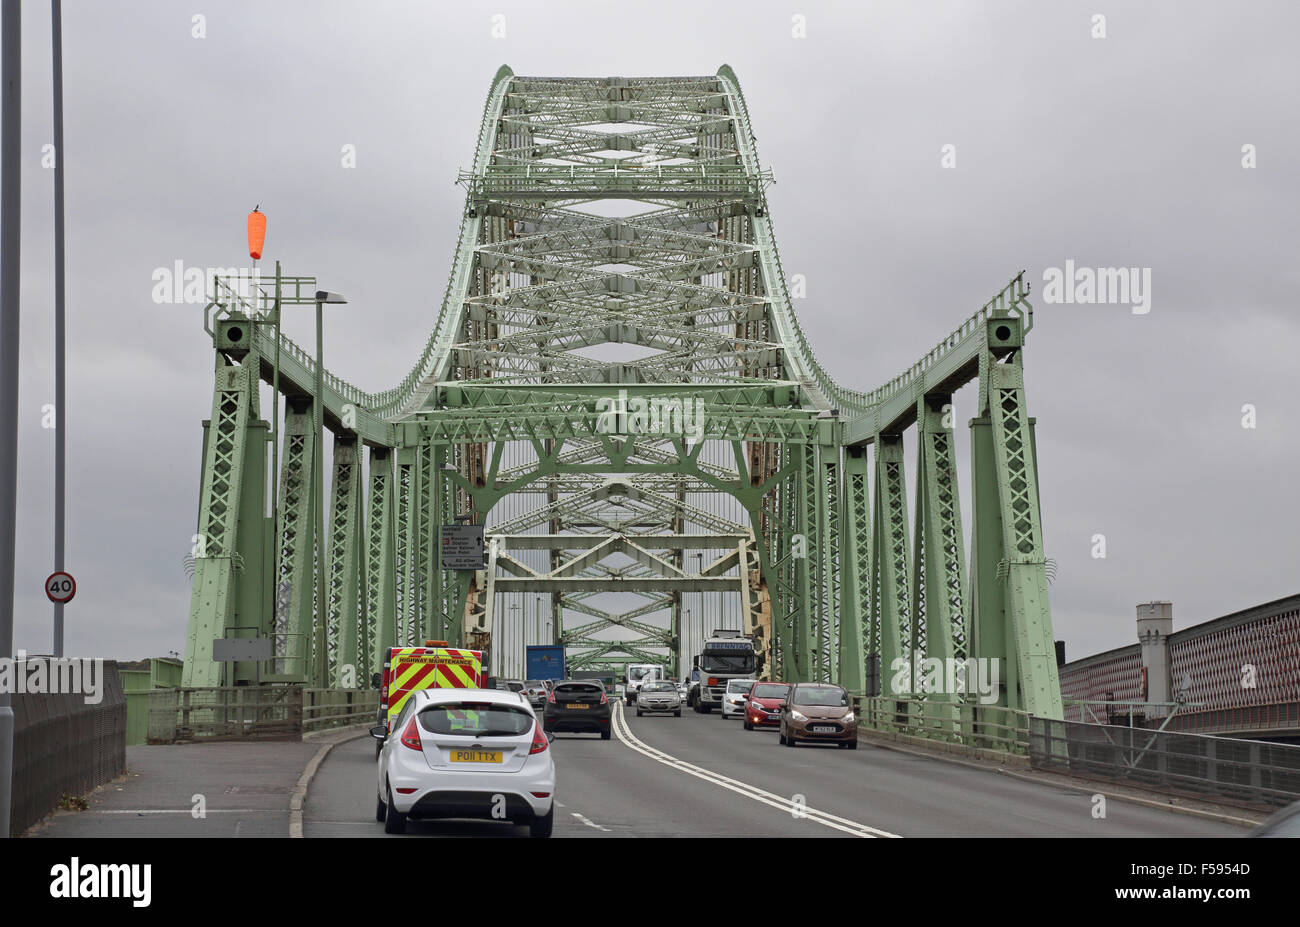 Traffic crossing the Silver Jubilee bridge over the River Mersey in Runcorn, UK. Bridge viewed from the north. - Stock Image